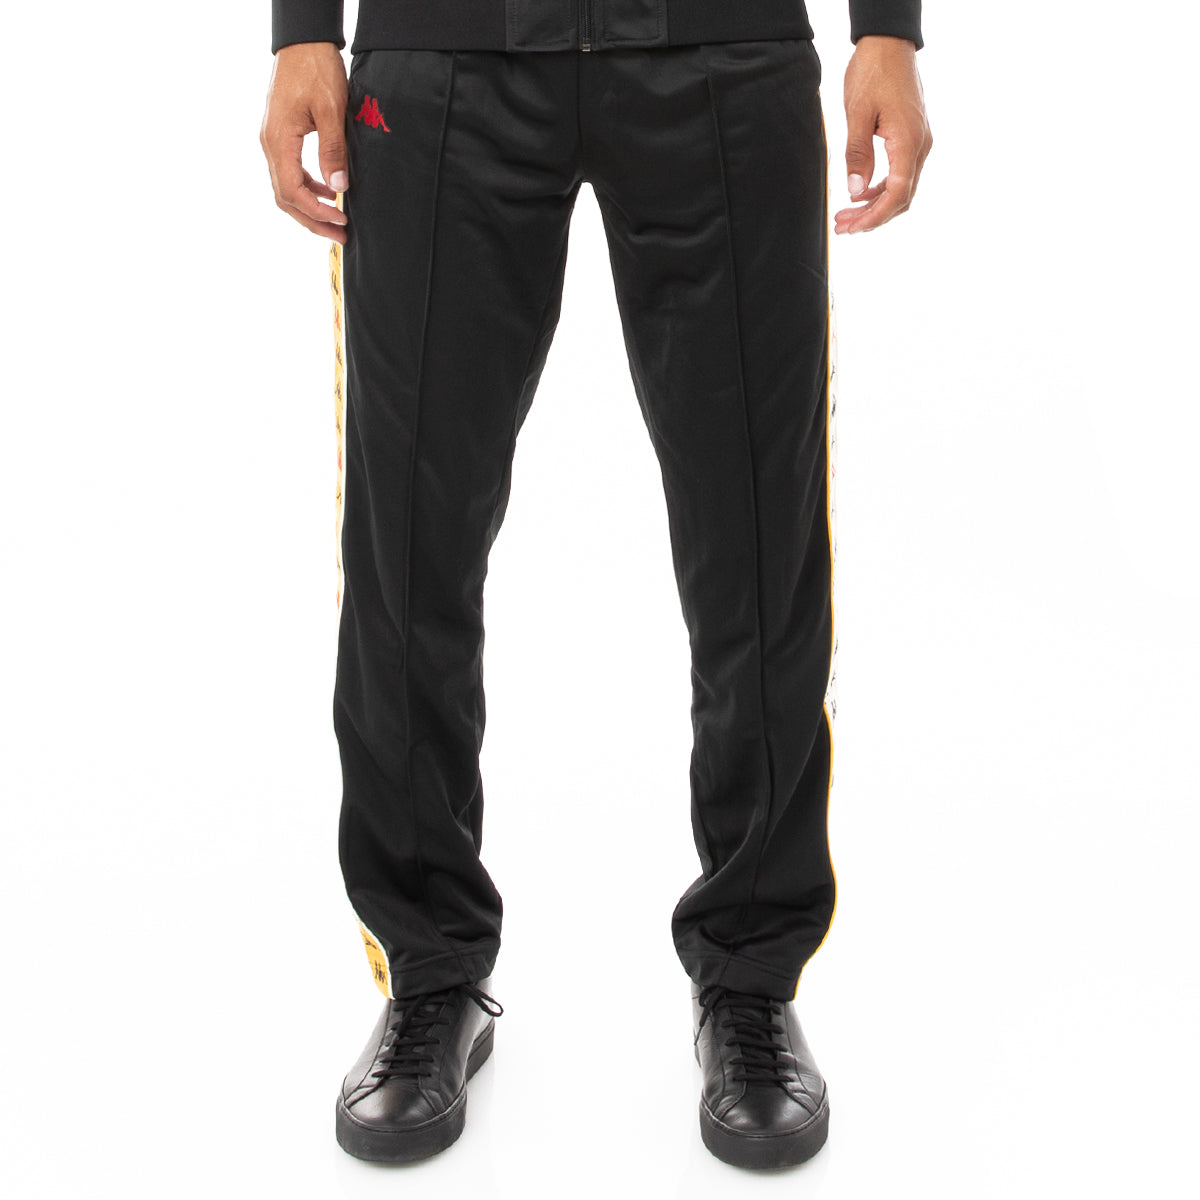 Kappa 222 Banda Dugrot Trackpants - Black Red Yellow Gold